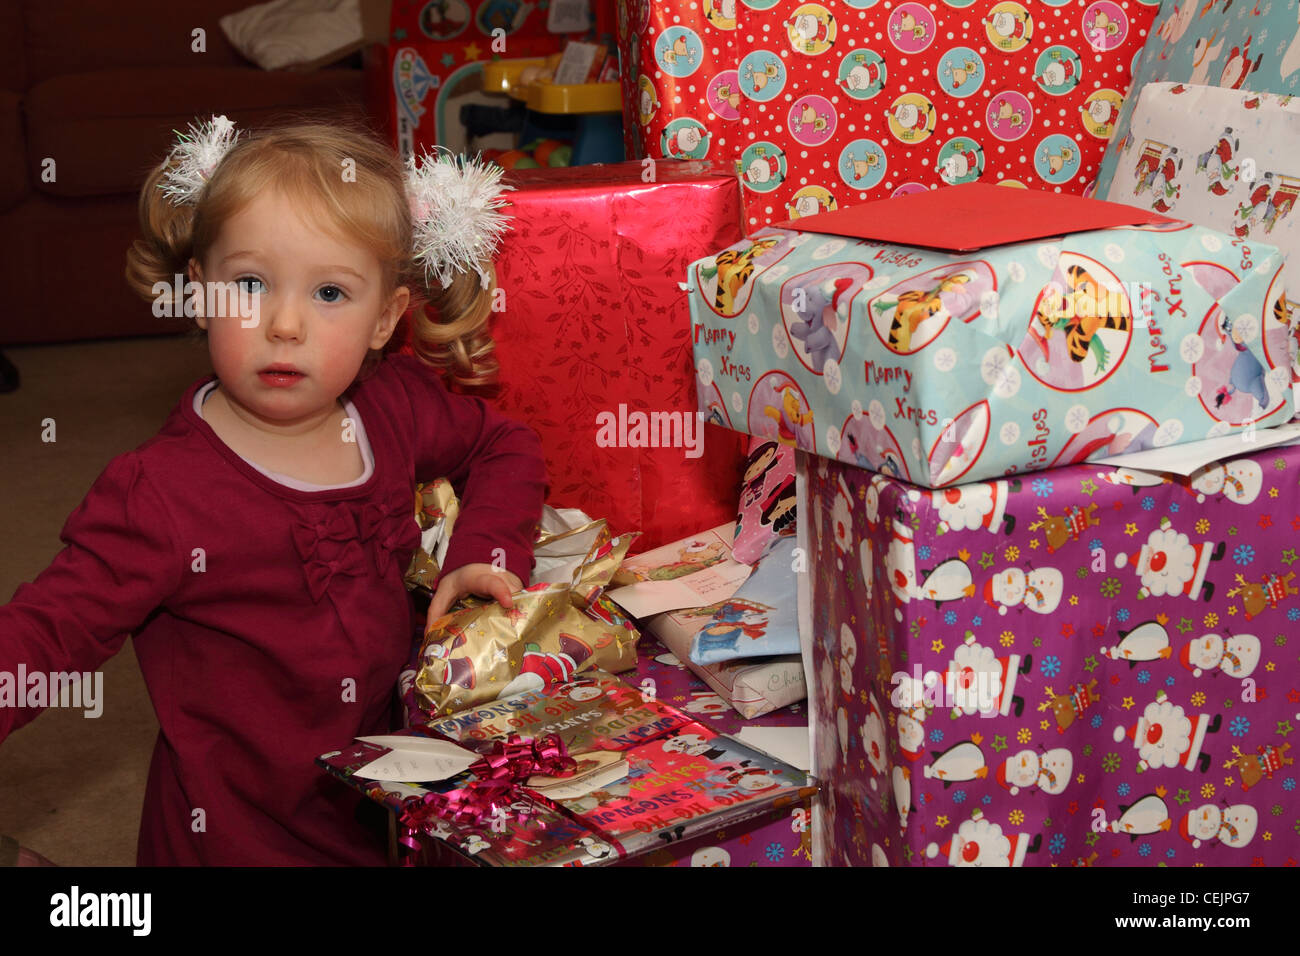 2-year-old girl opening Christmas presents Stock Photo: 43438759 - Alamy